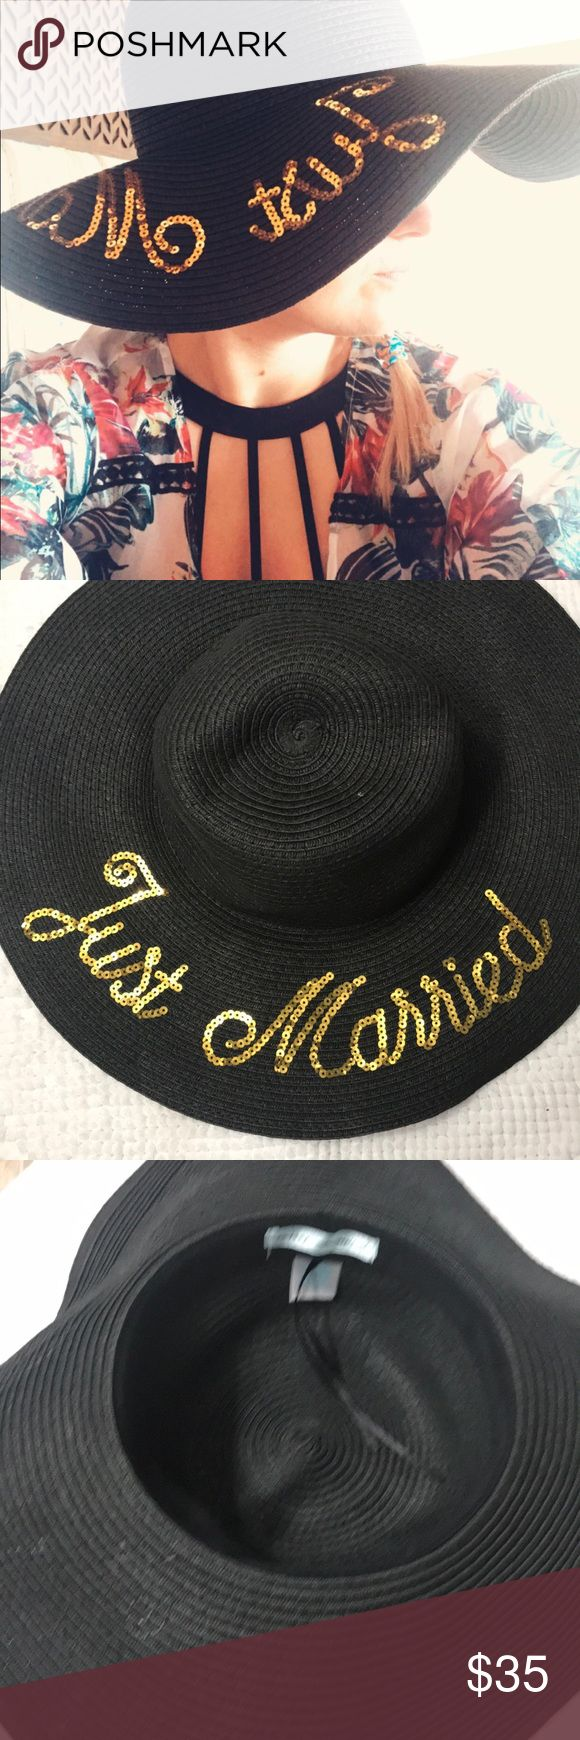 Betsey Johnson floppy Summer hat JUST MARRIED hat. Used our honeymoon. Black floppy hat with gold sequin letters. All sequins intact. Like new. Betsey Johnson Accessories Hats